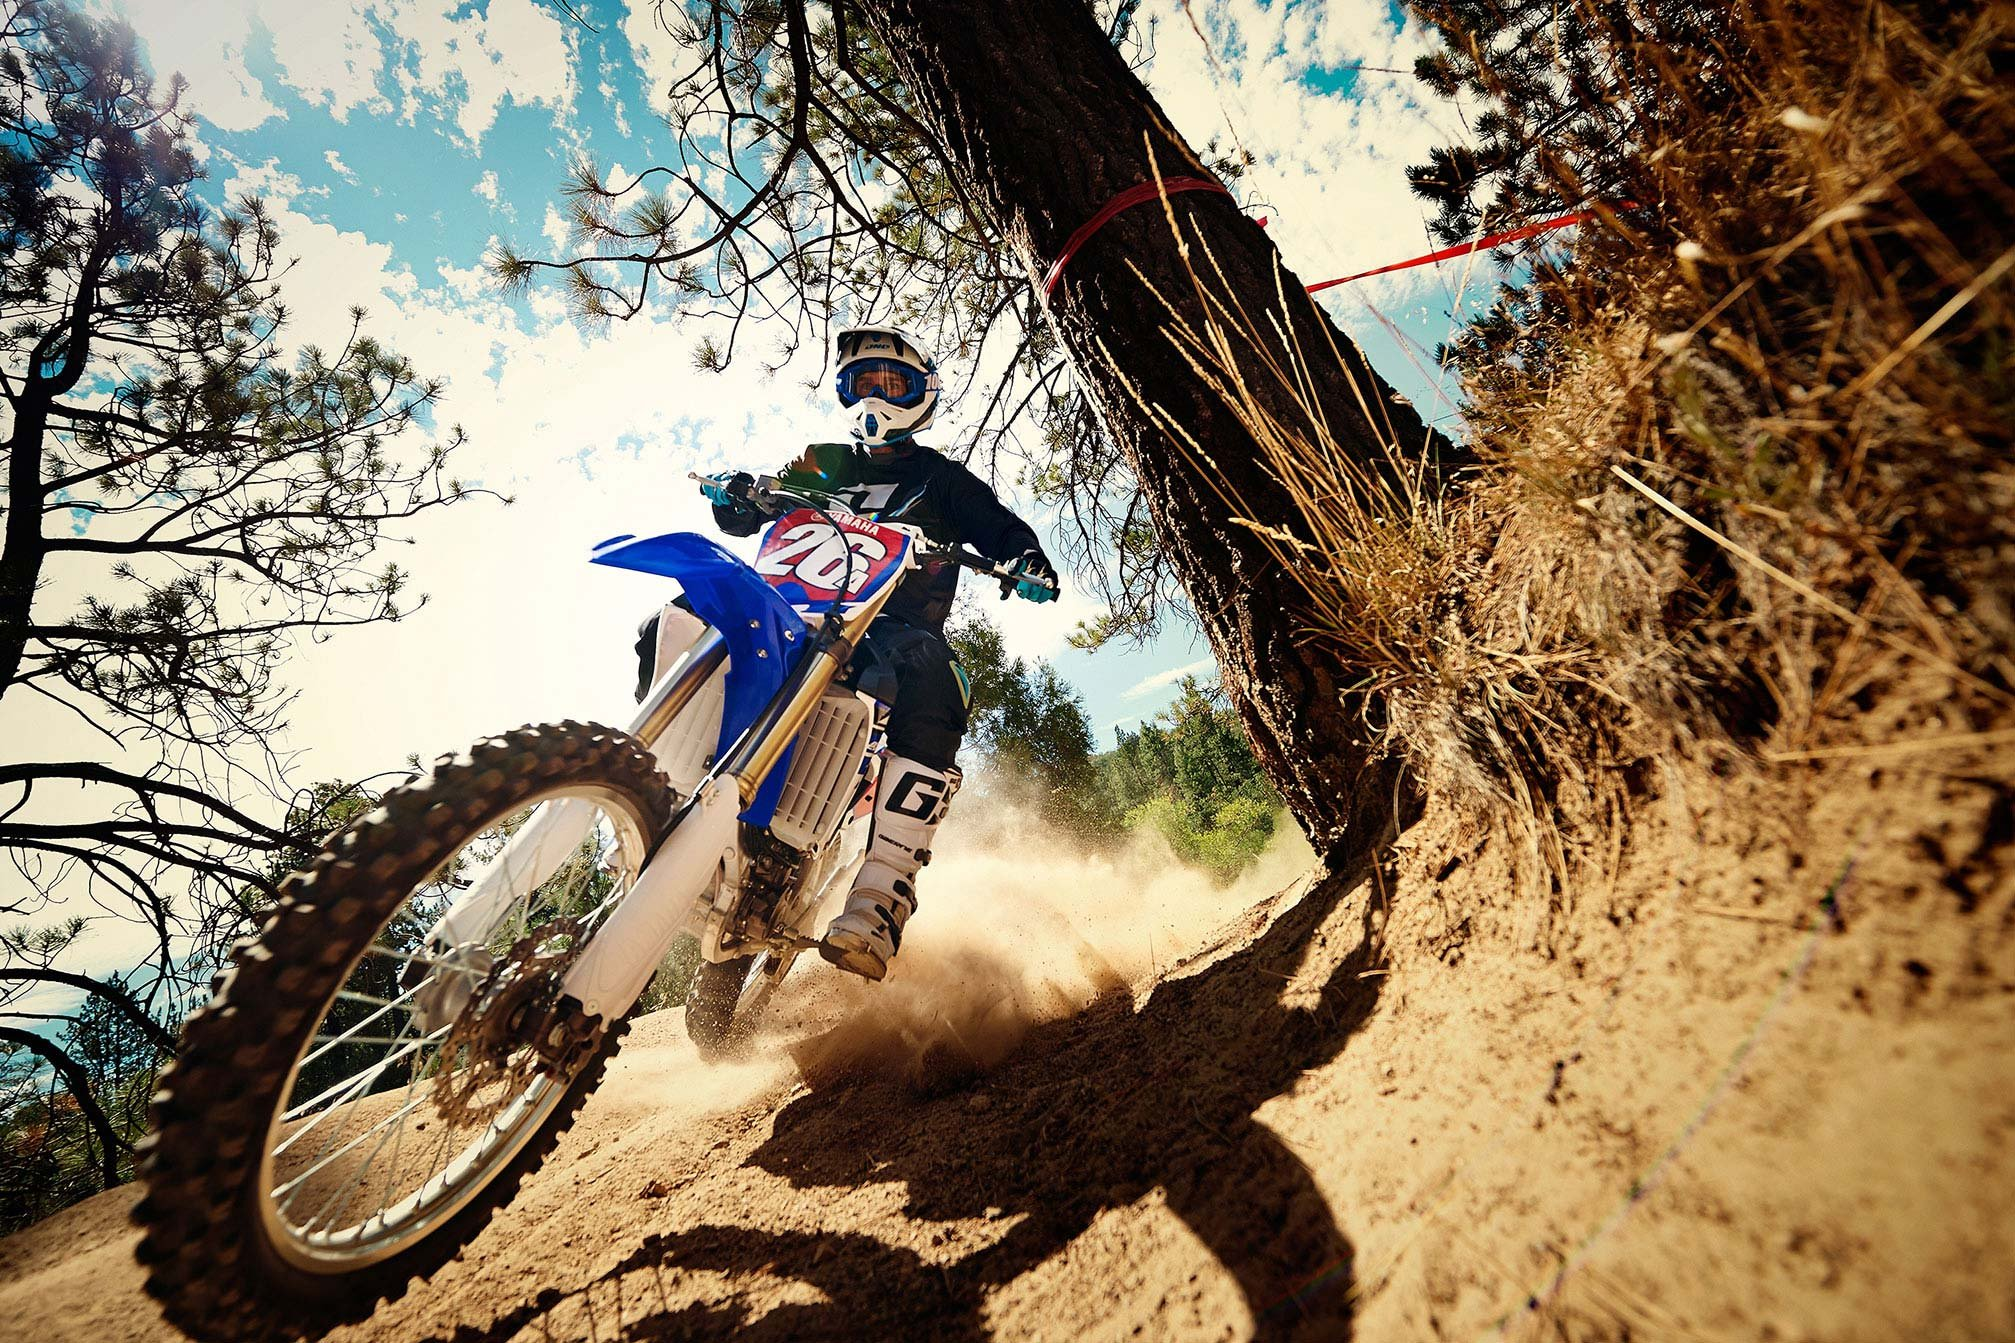 2015 yamaha yz250fx motocross dirtbike moto wallpaper. Black Bedroom Furniture Sets. Home Design Ideas